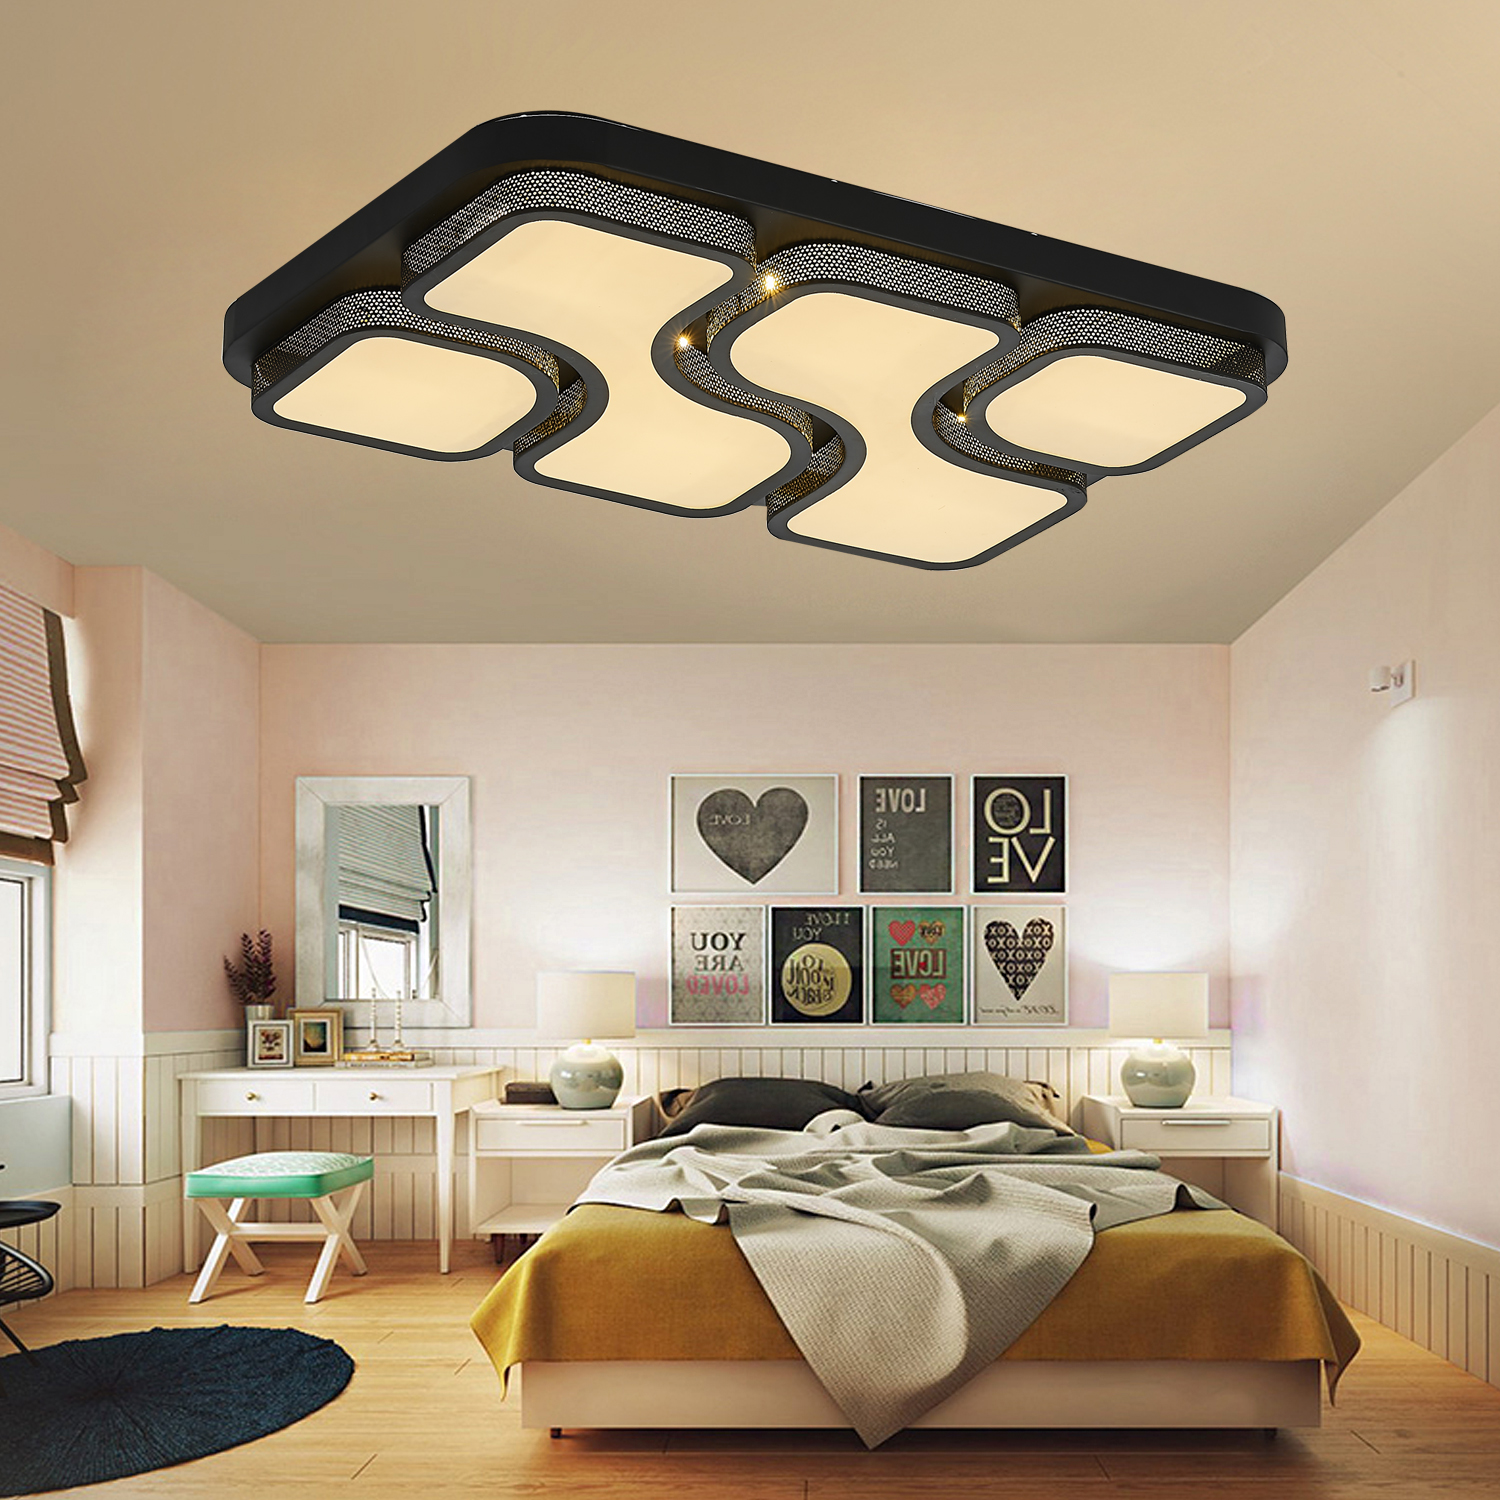 led deckenleuchte schlafzimmer deckenlampe dimmbar wohnzimmer flur design lampe ebay. Black Bedroom Furniture Sets. Home Design Ideas